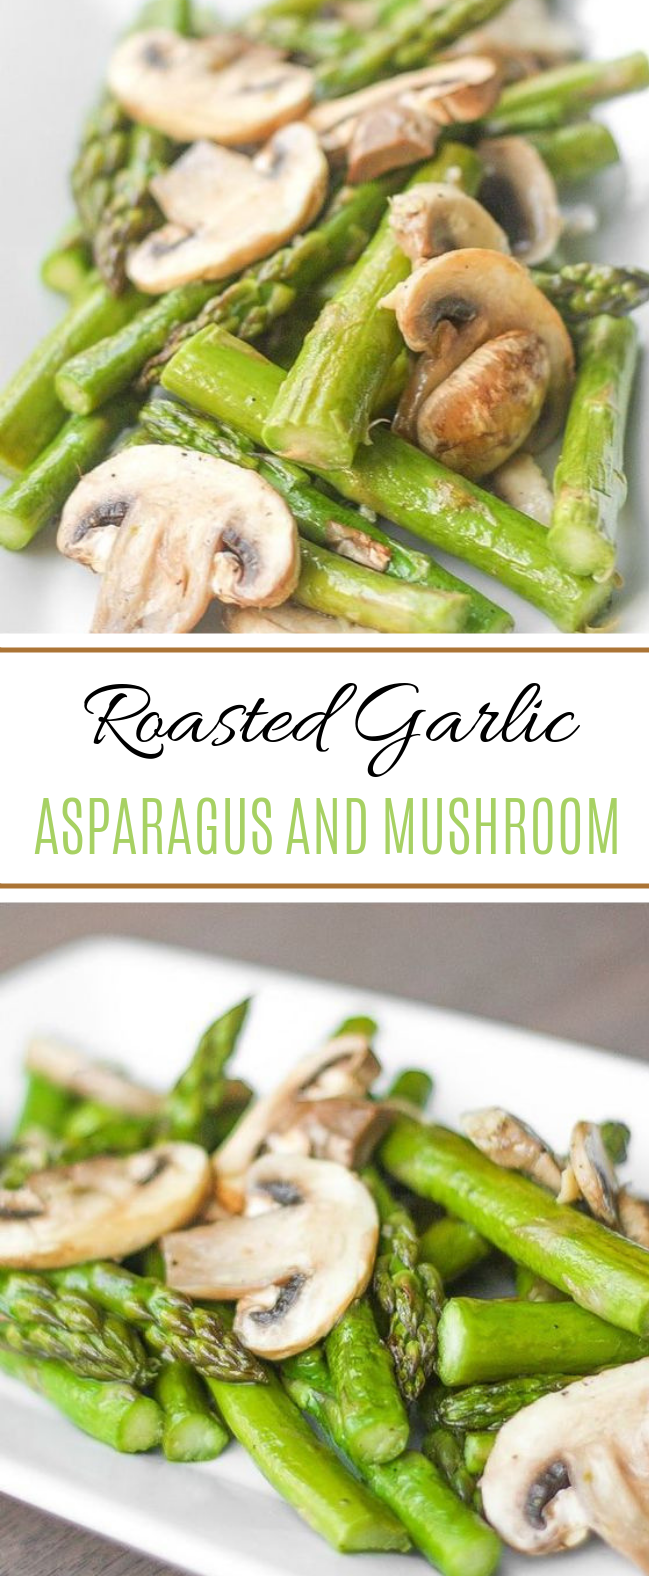 Roasted Garlic Asparagus and Mushrooms #sidedish #vegetarian